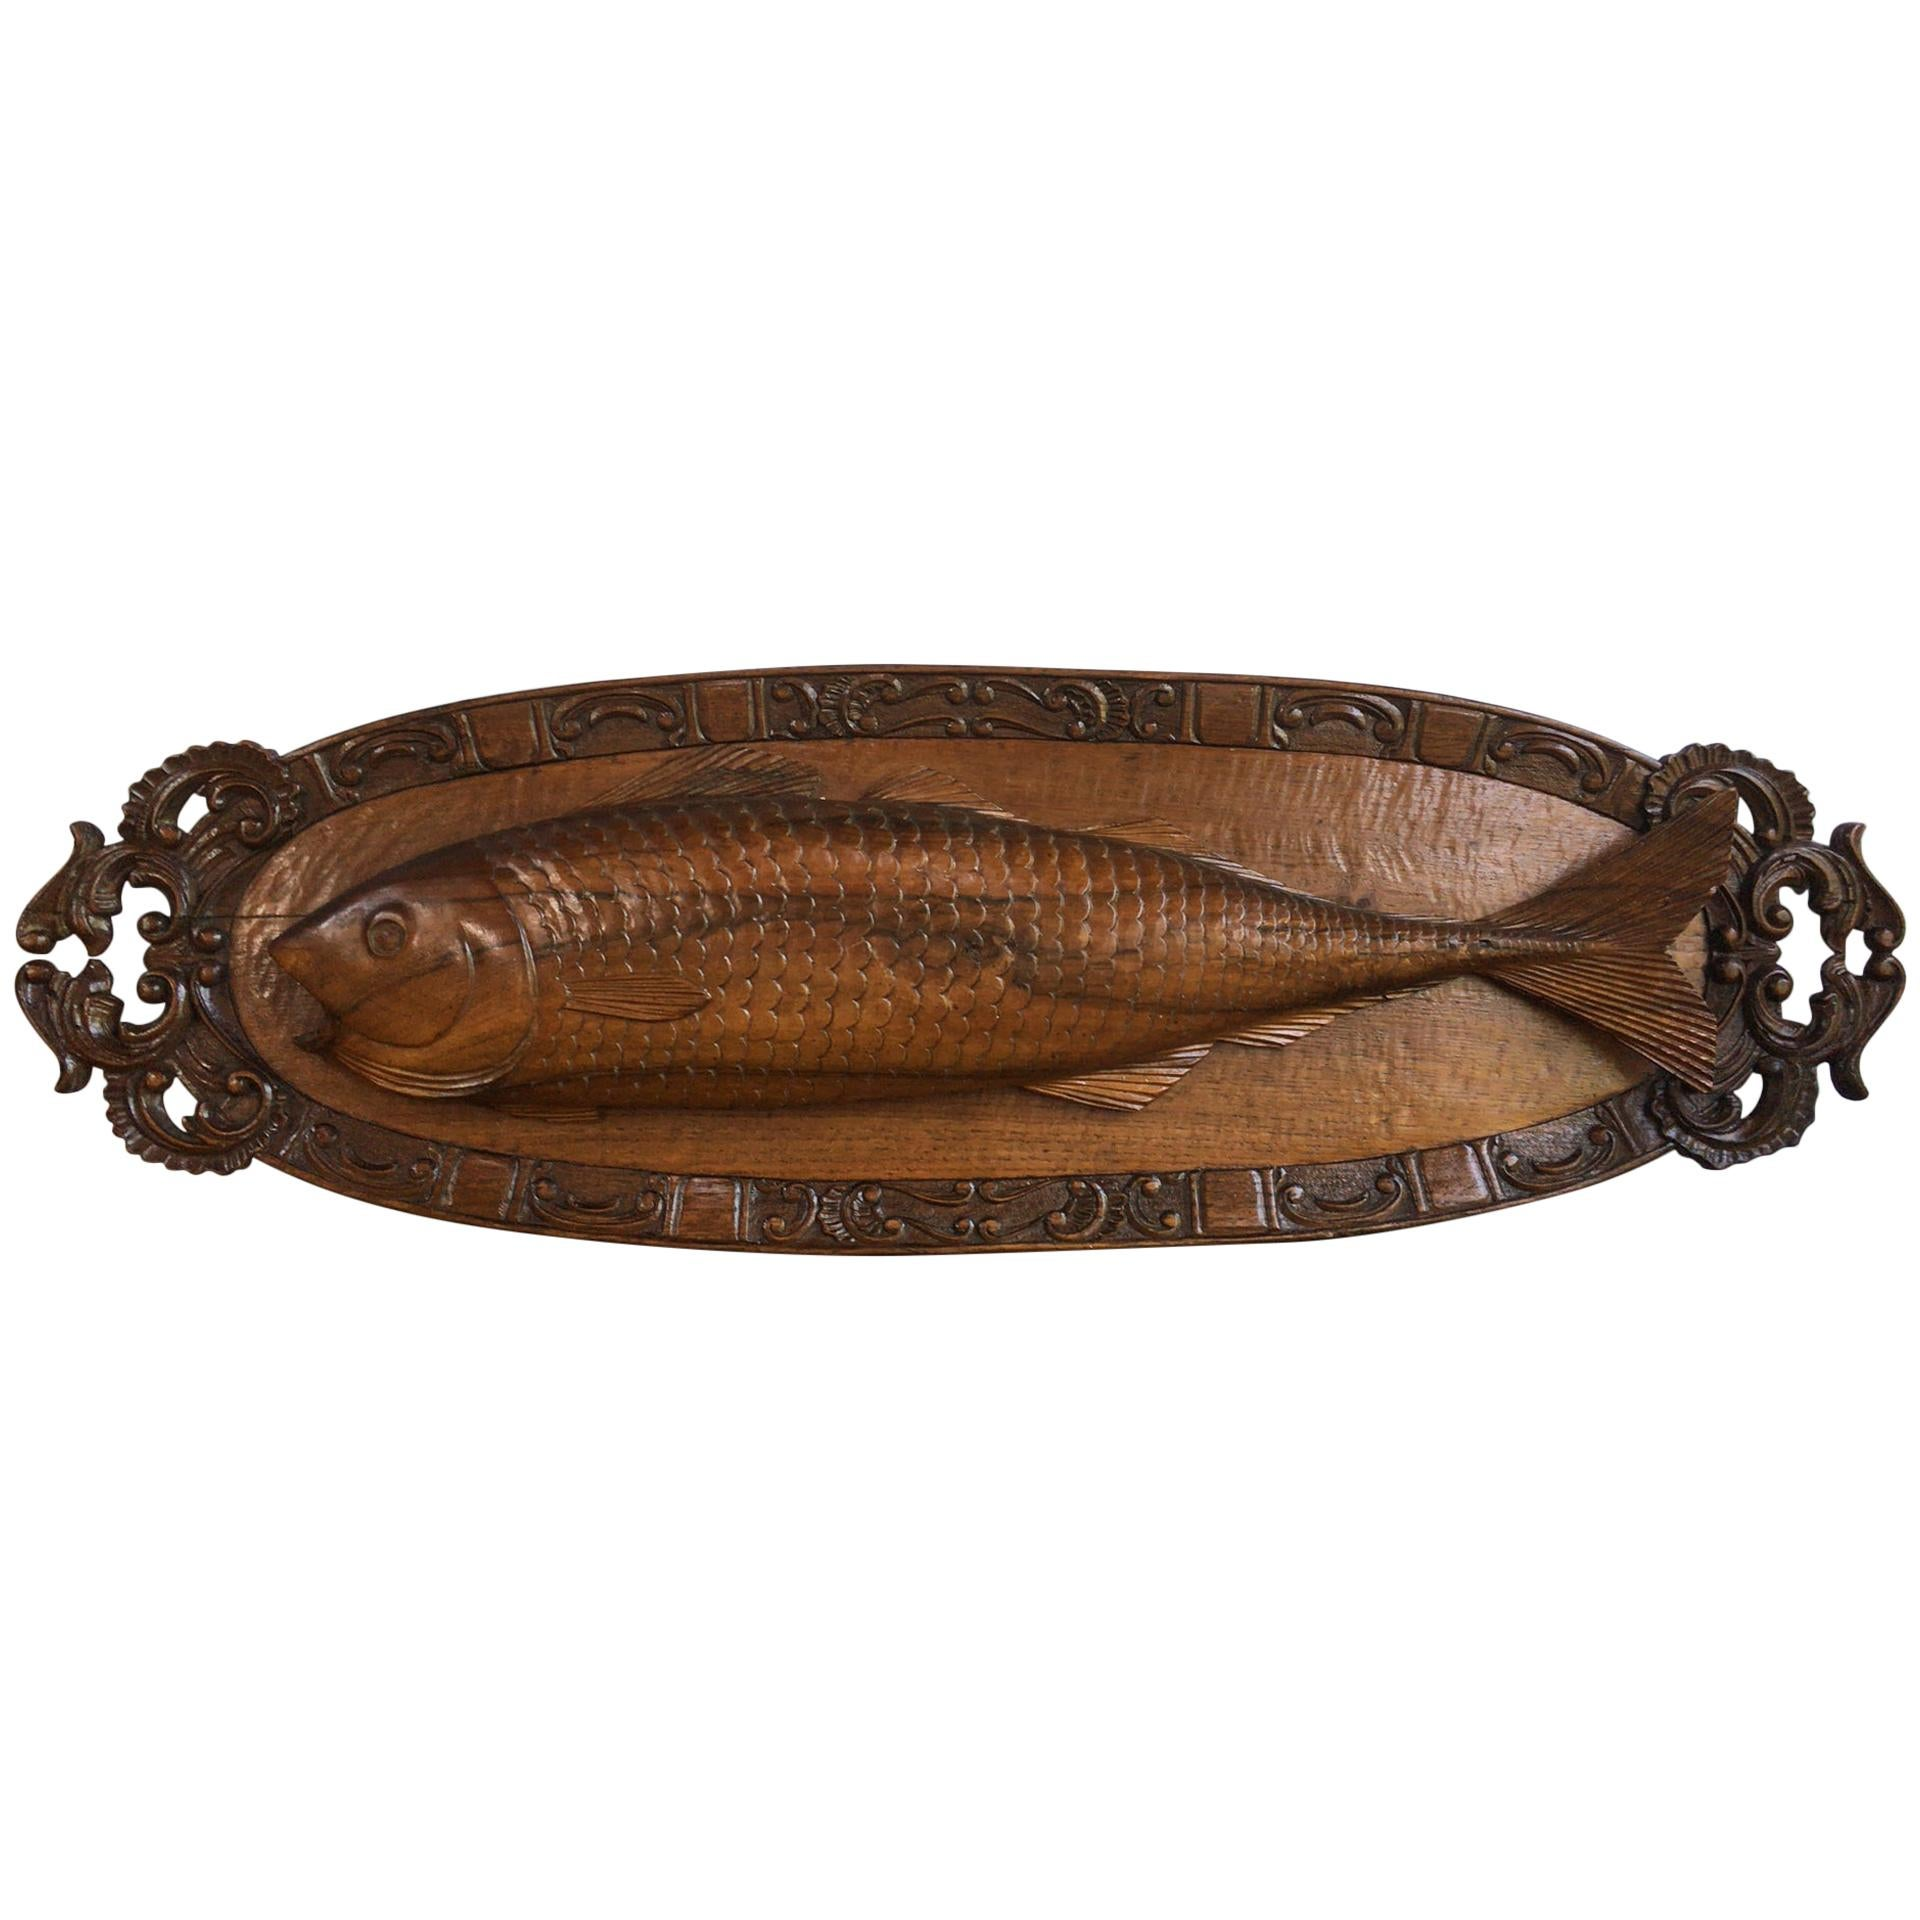 19th Century Black Forest Carved Wood Fish Trophy Wall Plaque